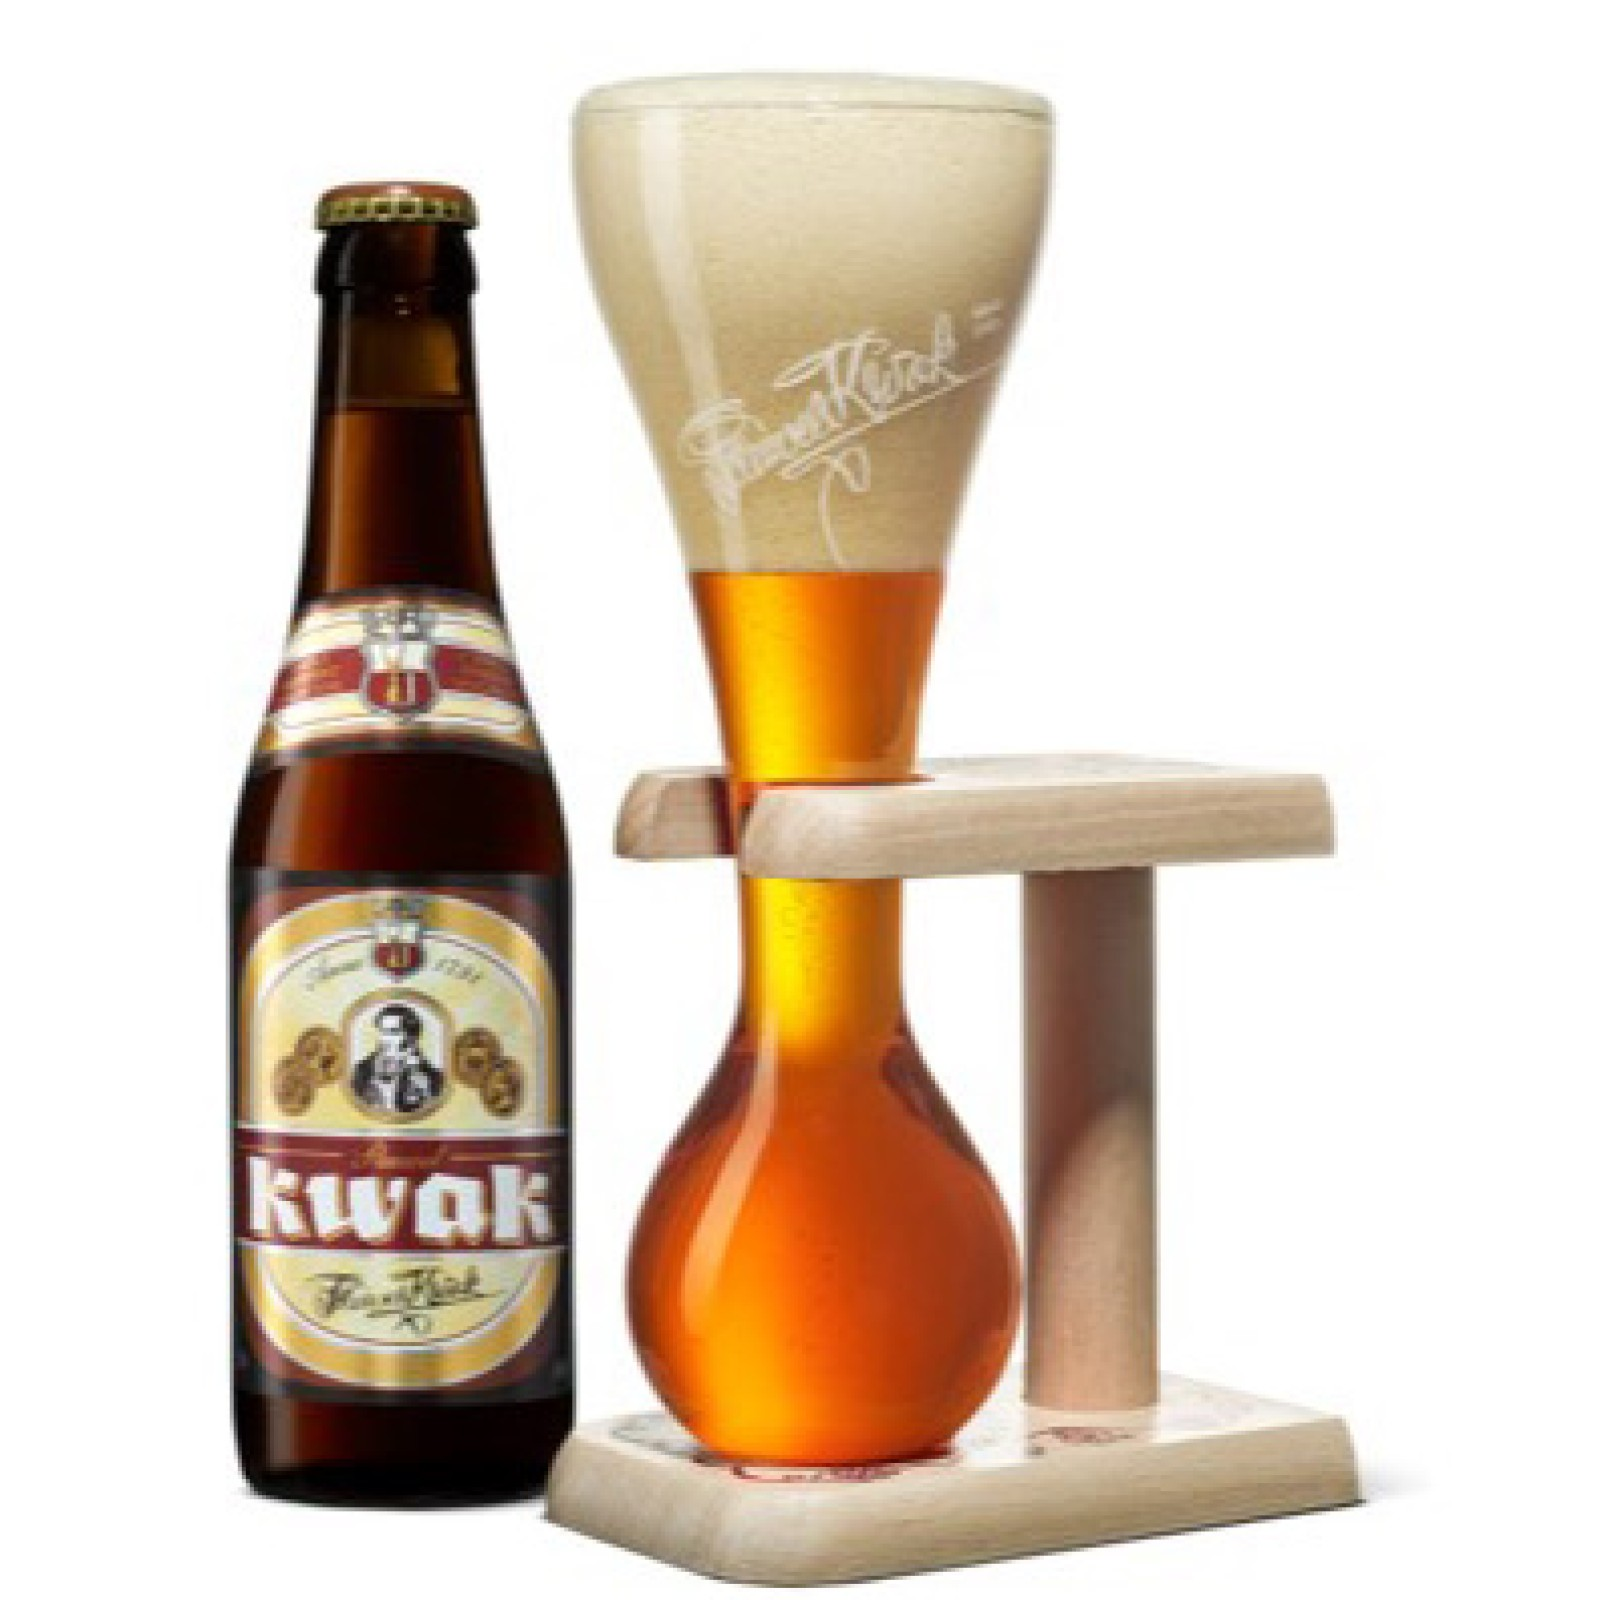 KWAK Strong Amber Ale 8.4% 330ml